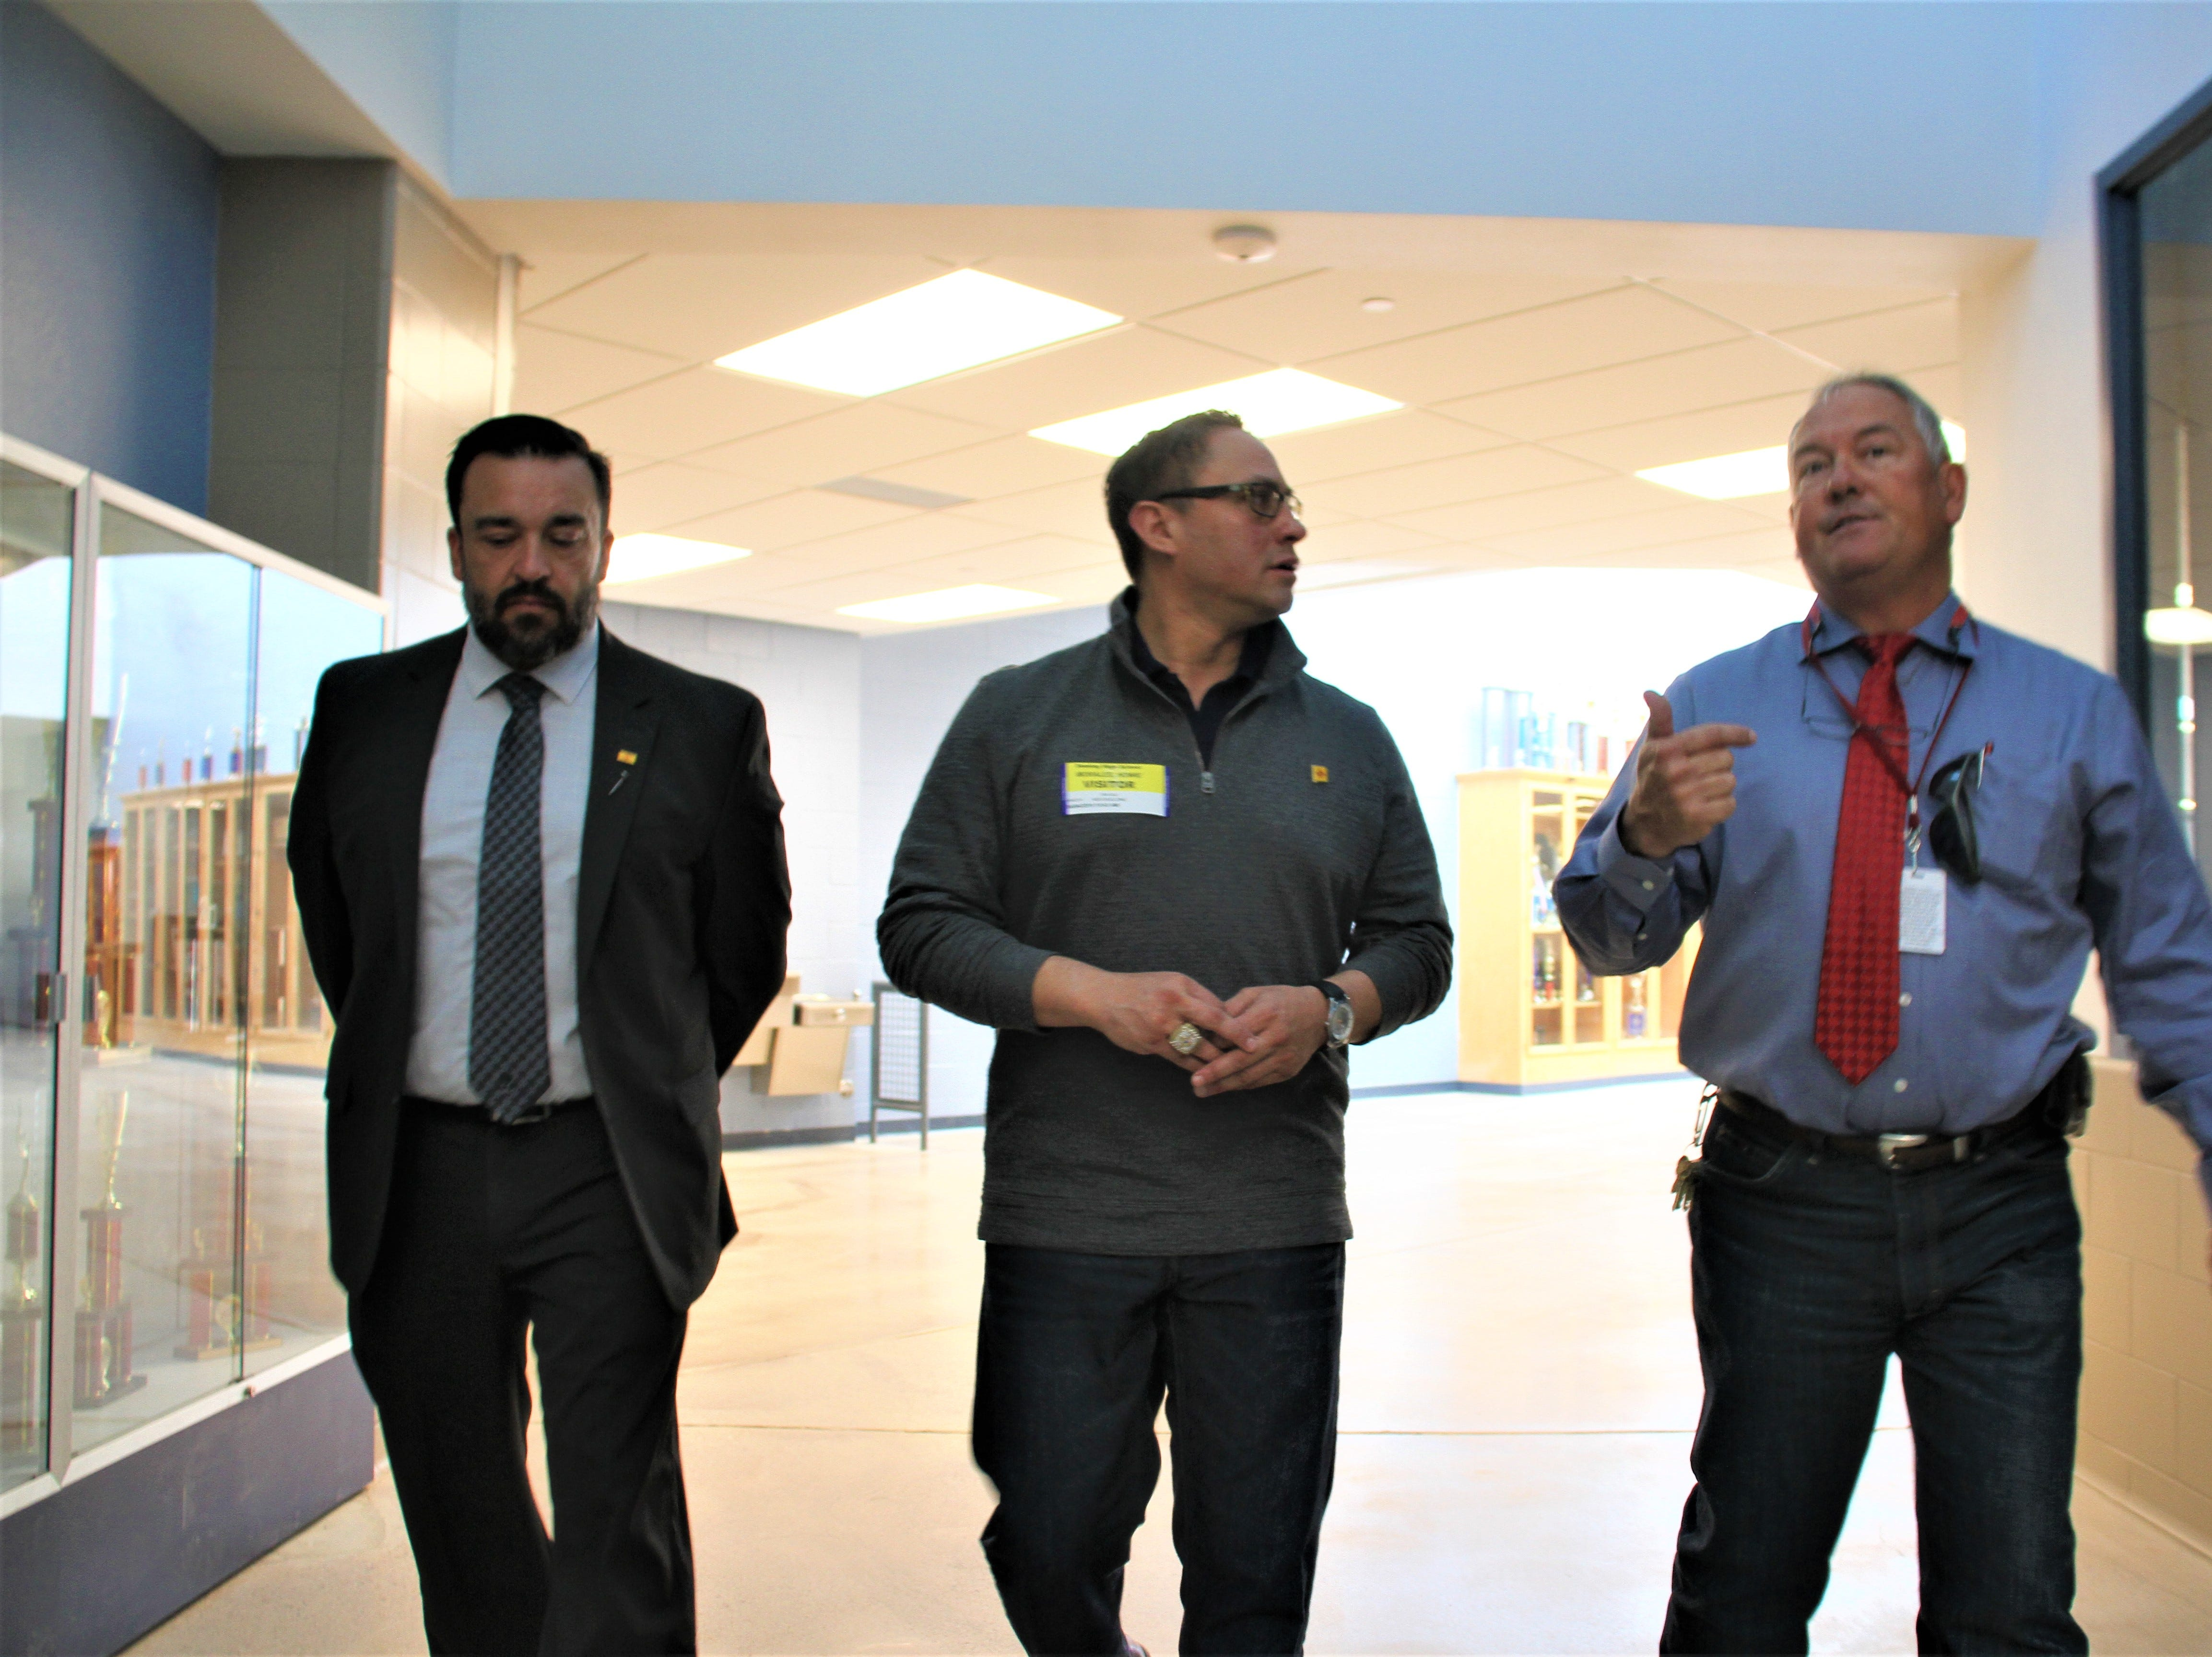 From left, Superintendent Dr. Arsenio Romero, Lt. Gov. Howie Morales and Chief of Support Services Herb Borden patrolling the halls of Deming High School.